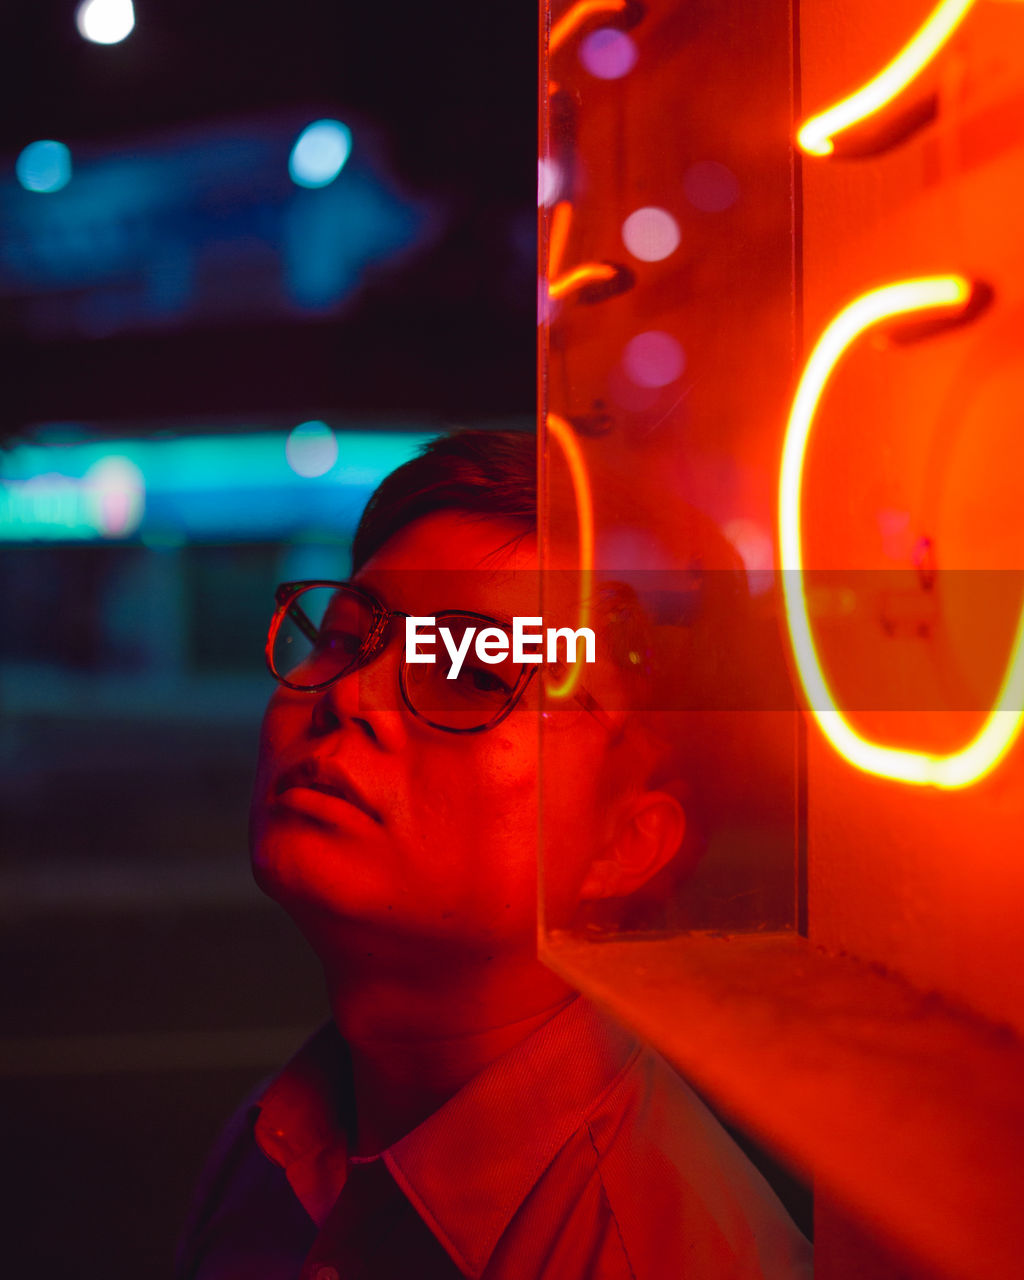 glasses, illuminated, eyeglasses, night, red, headshot, one person, close-up, portrait, glowing, looking, real people, lighting equipment, focus on foreground, men, light - natural phenomenon, neon, outdoors, young men, motion, nightlife, light